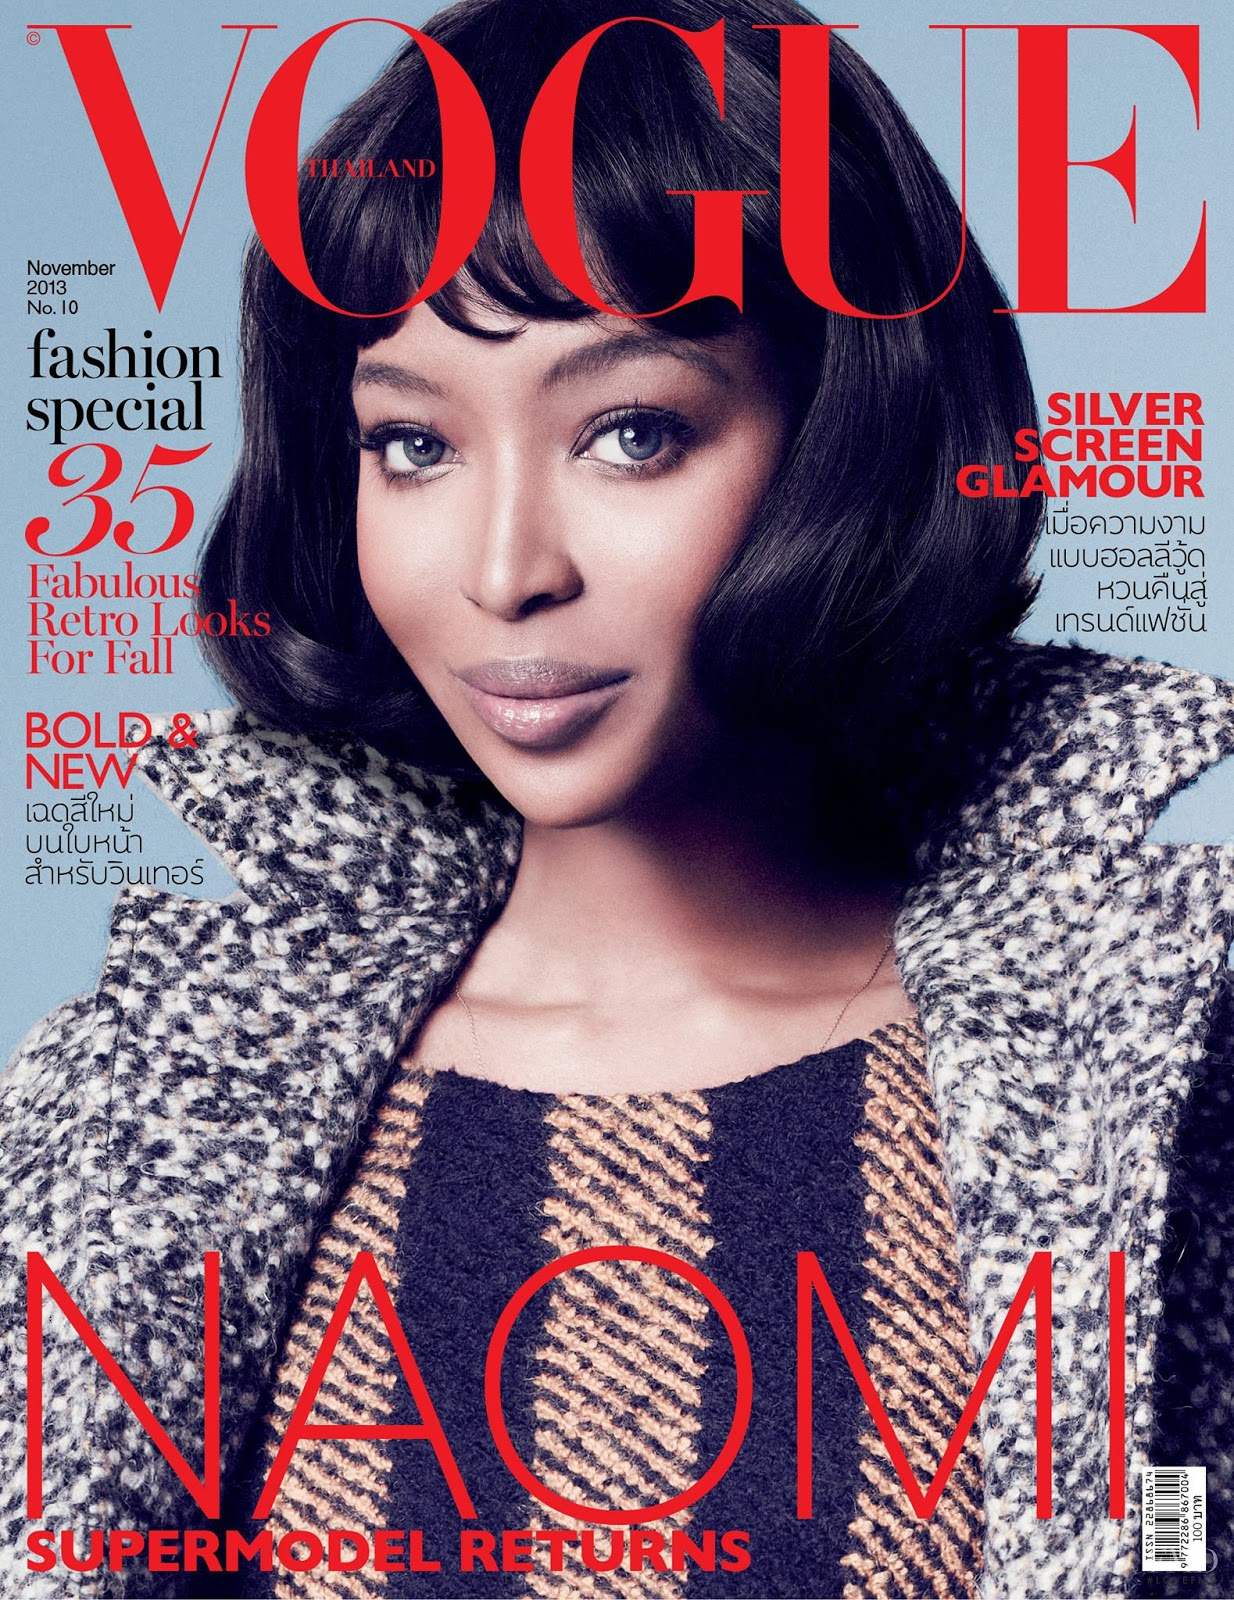 2019 year lifestyle- Campbell naomi vogue australia may cover